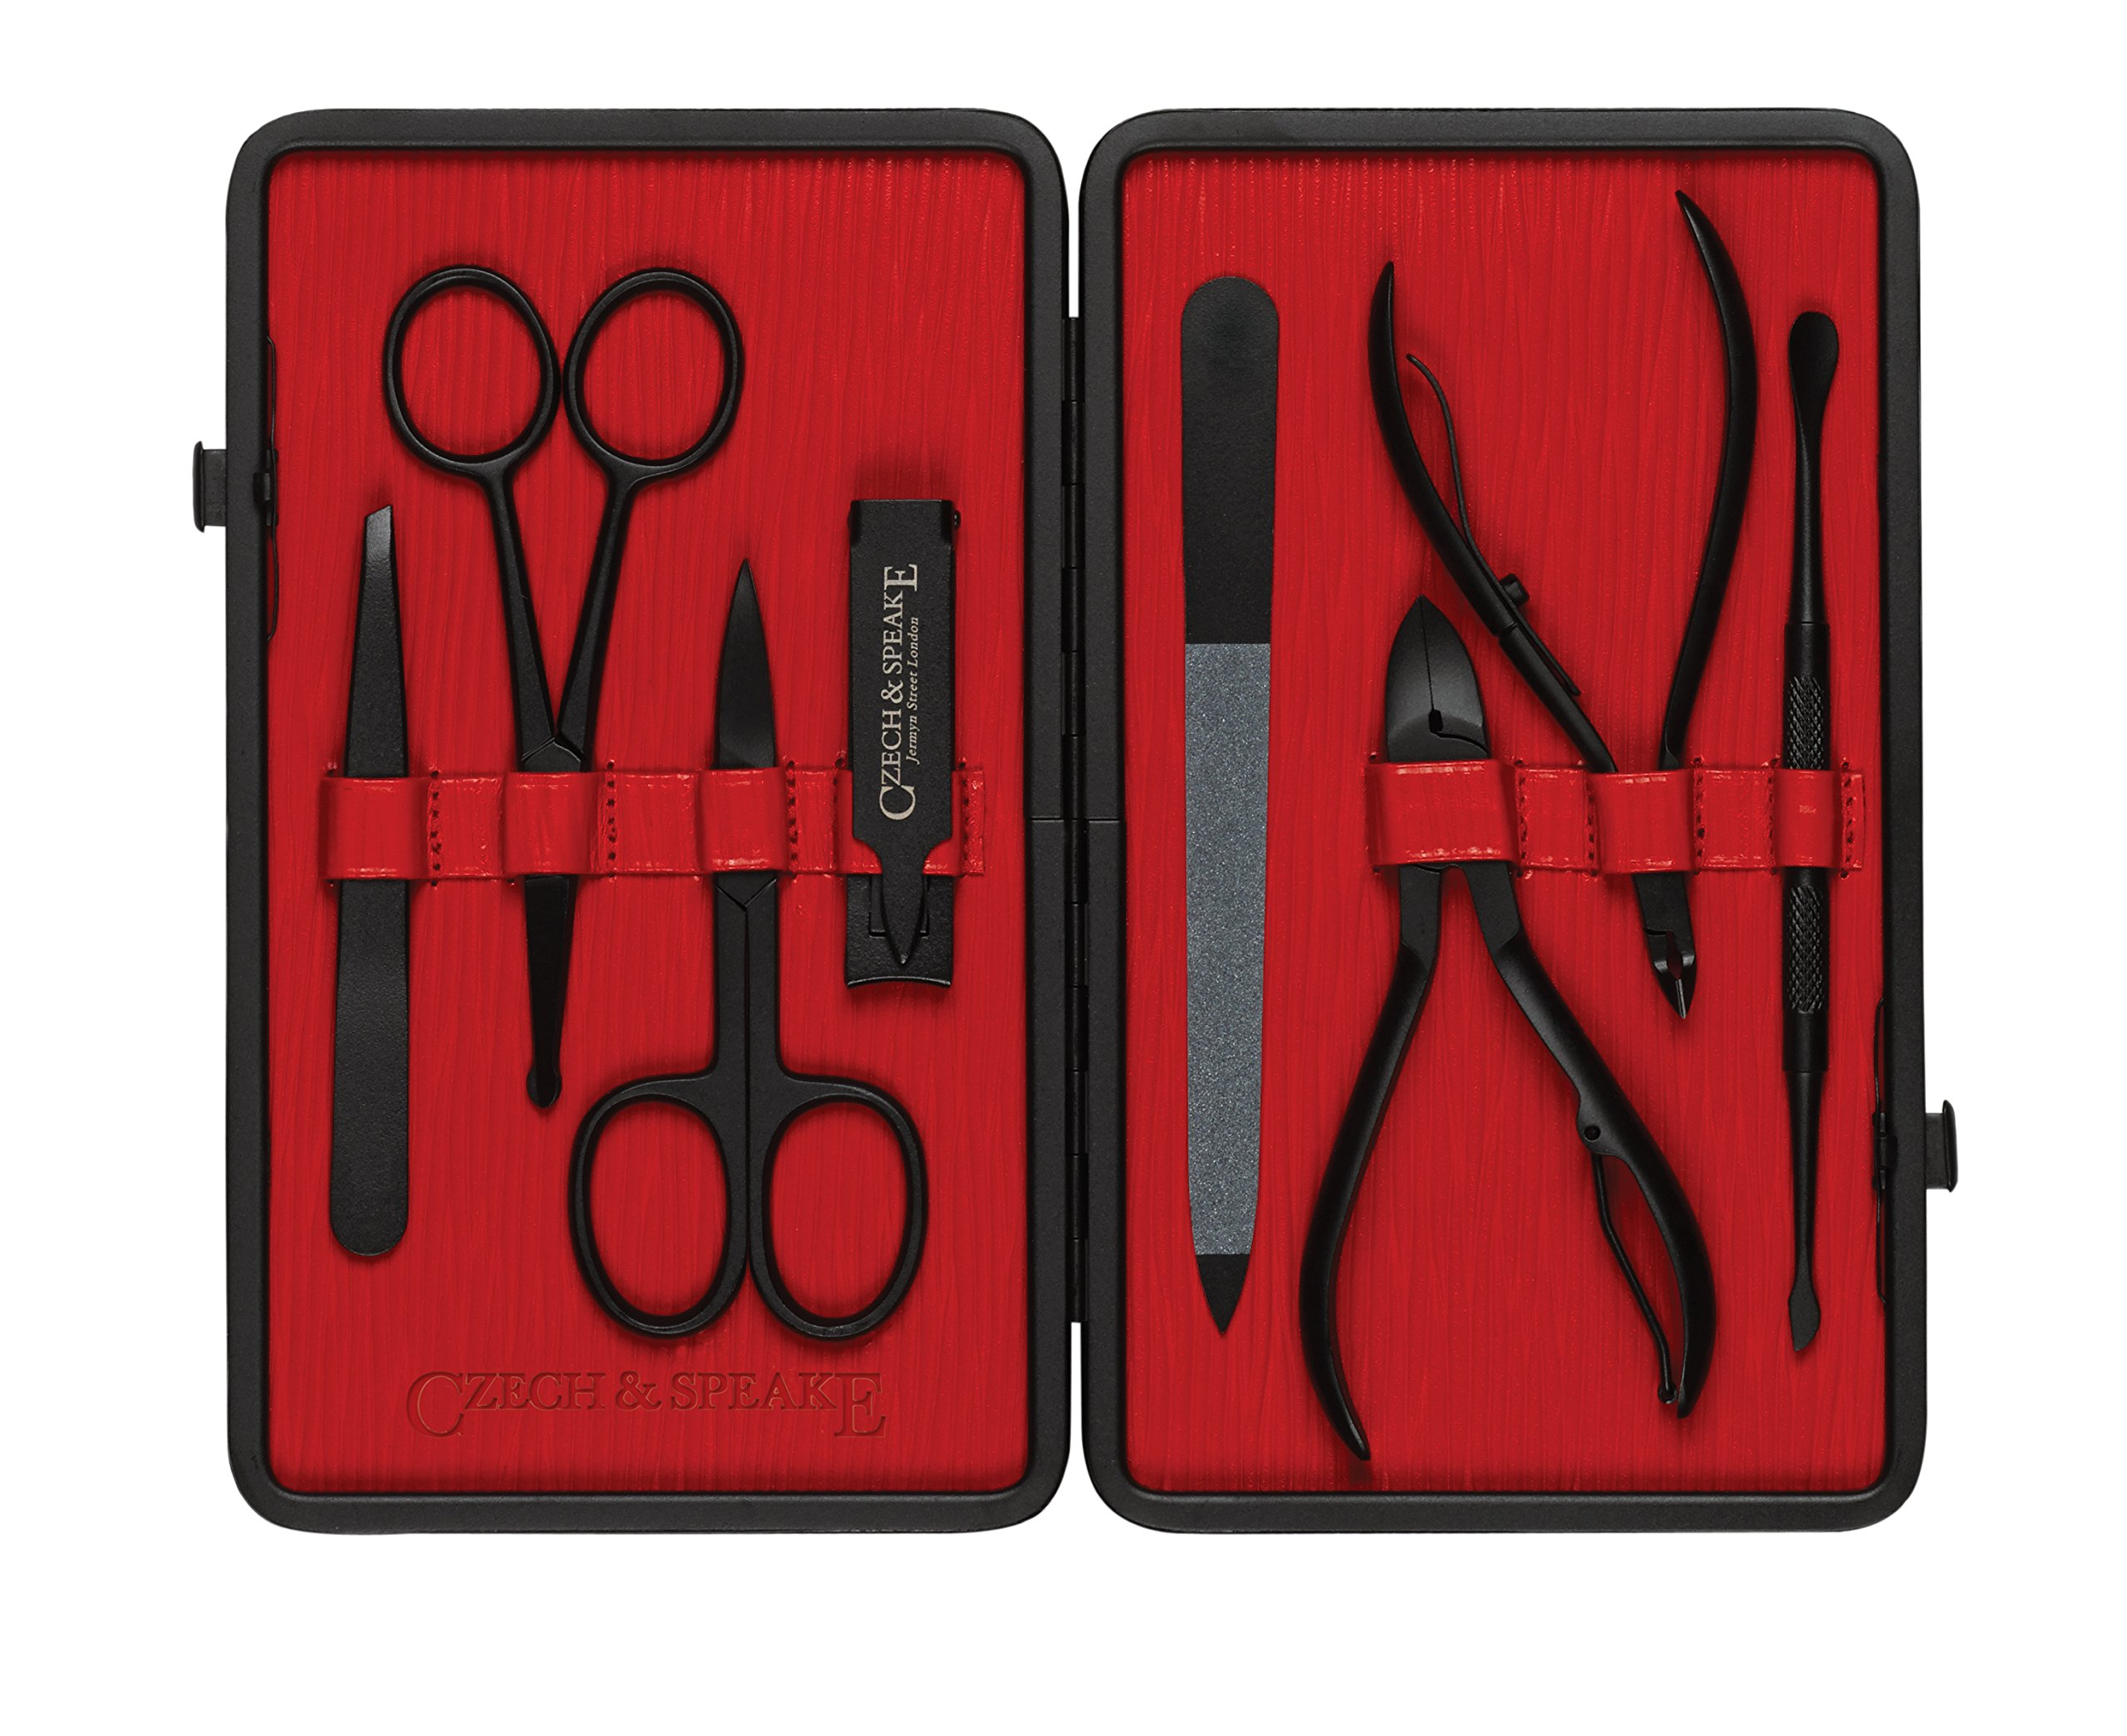 Czech and Speake Manicure Set - Black/Red